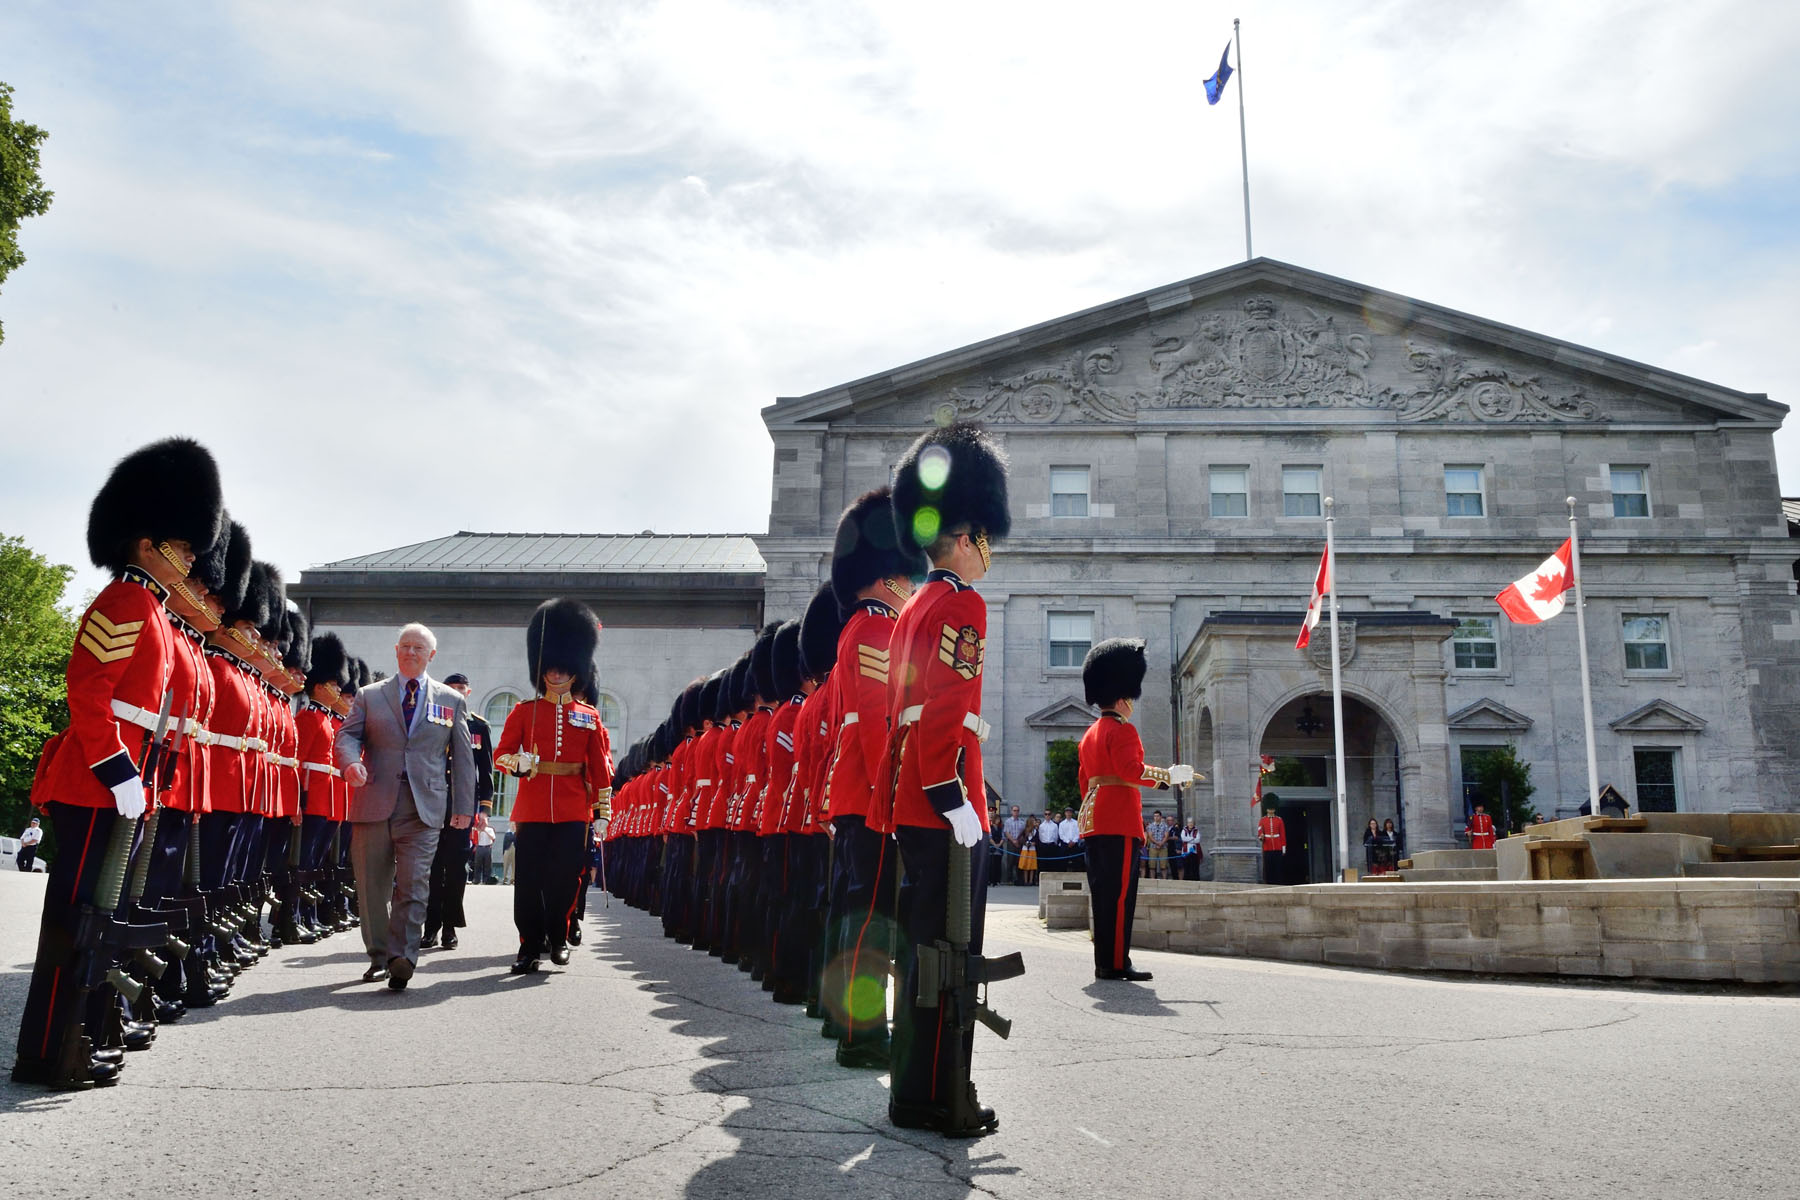 In addition to sentry duty at Rideau Hall, they perform the Changing of the Guard ceremony on Parliament Hill each day at 10 a.m., and fulfill sentry duties at the Tomb of the Unknown Soldier, located at the National War Memorial, from 9 a.m. to 5 p.m. daily. When required, the Ceremonial Guard mounts guards of honour for visiting dignitaries.